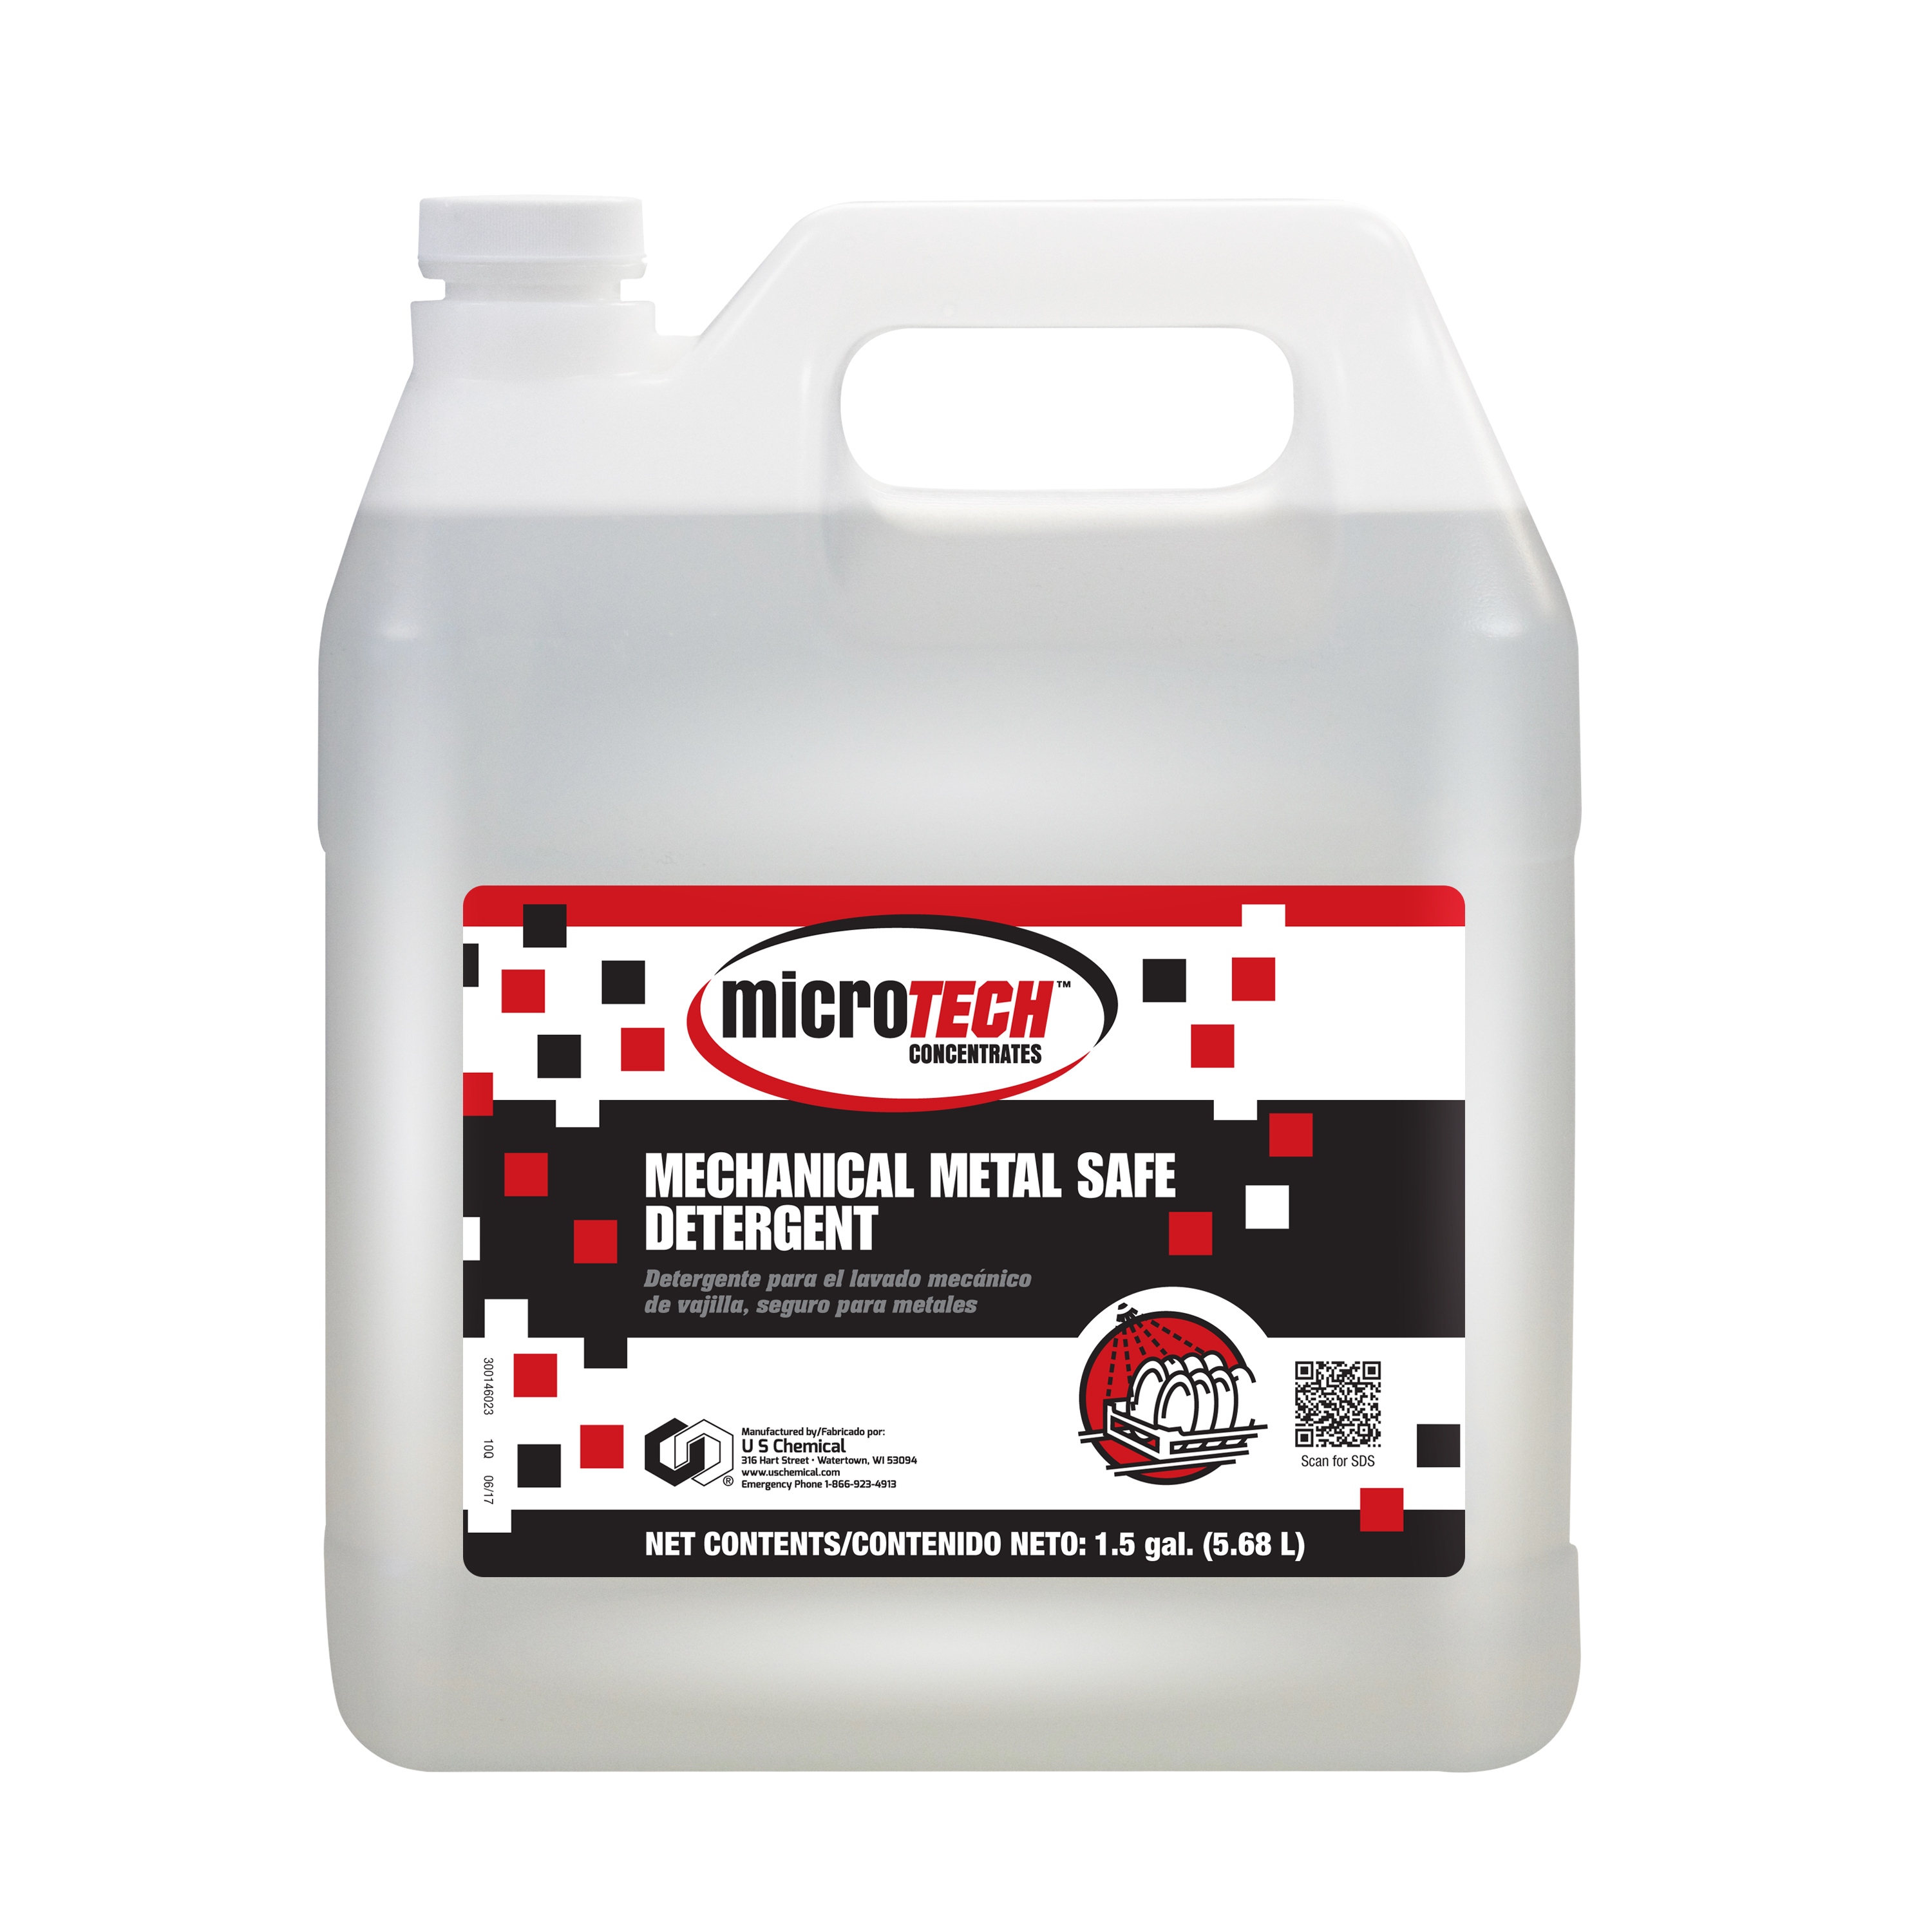 5325242_MECHANICAL_METAL_SAFE_DETERGENT